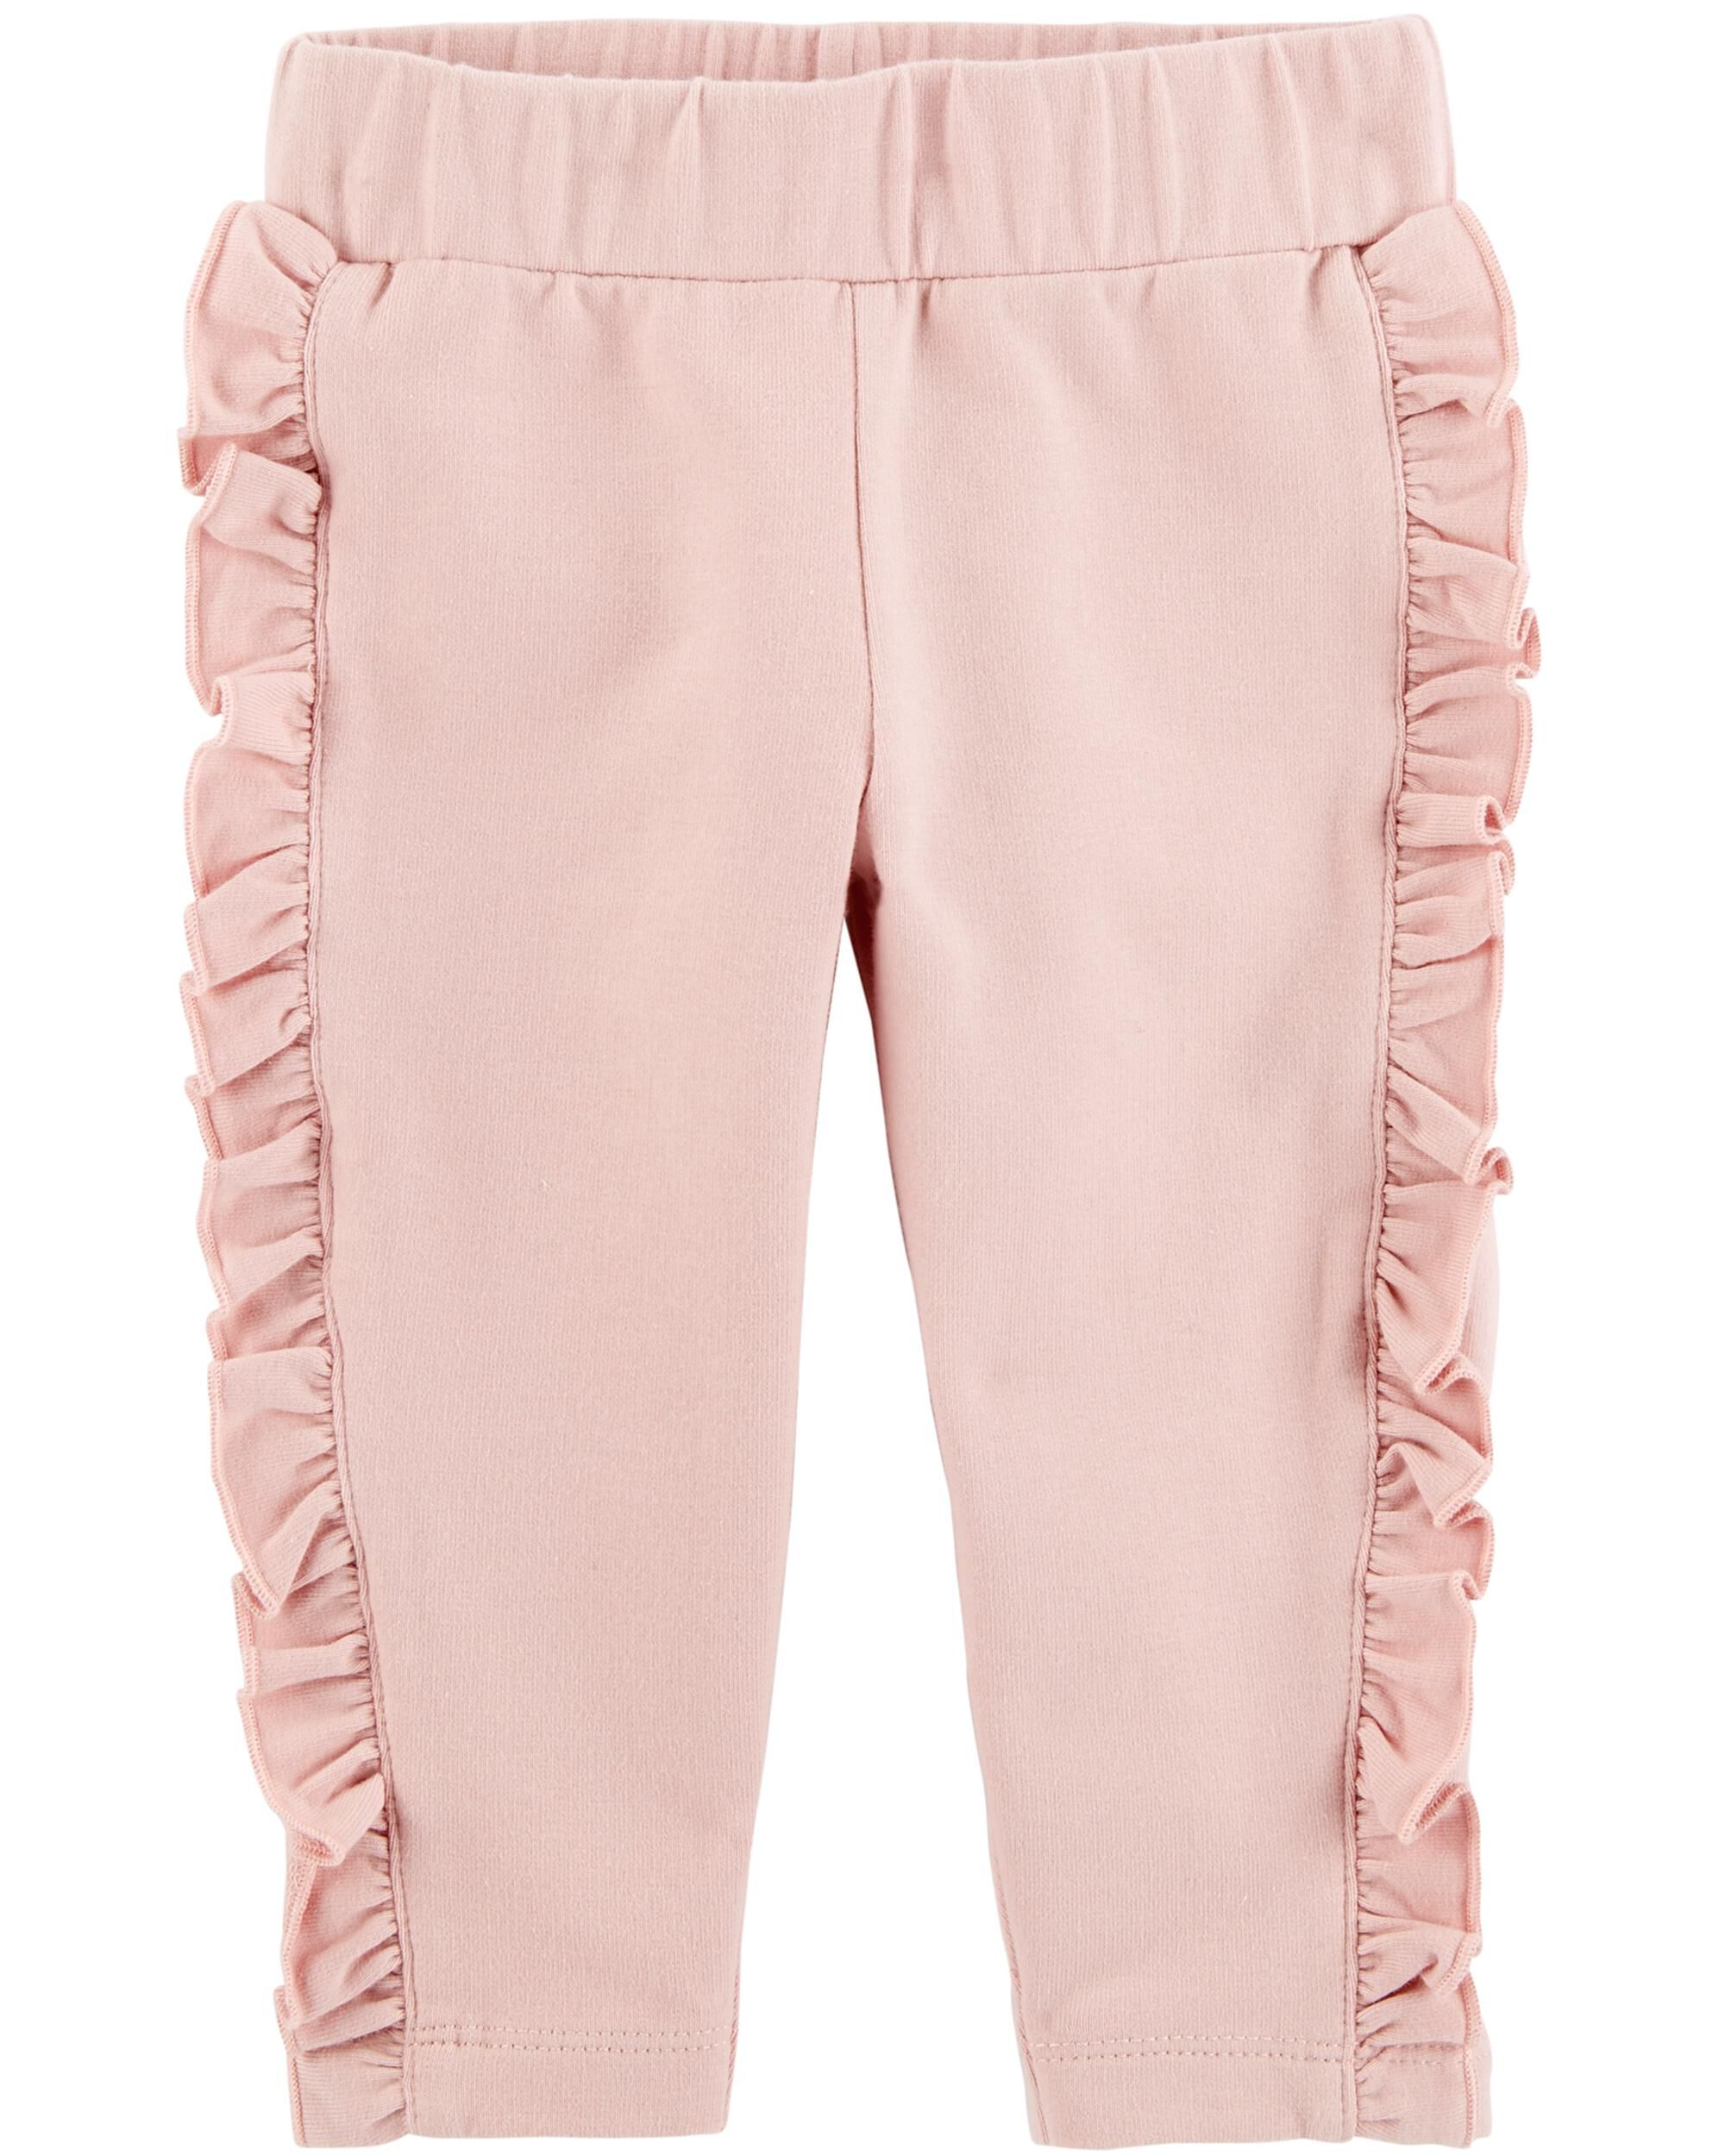 24m, Pink Carters Baby Girls French Terry Jeggings Pants